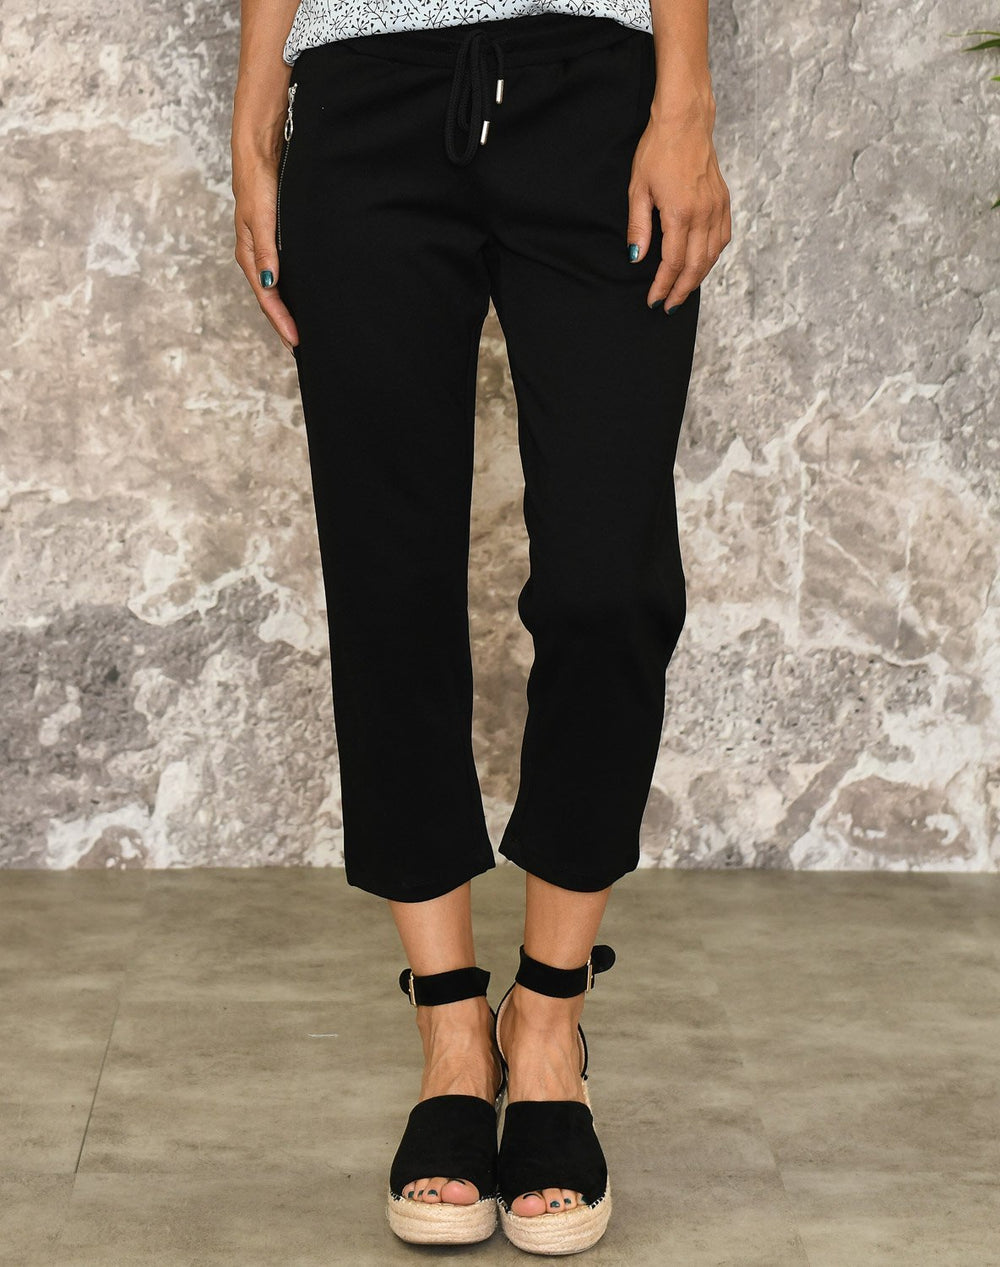 Ofelia Frida pirate solid pants black - Online-Mode